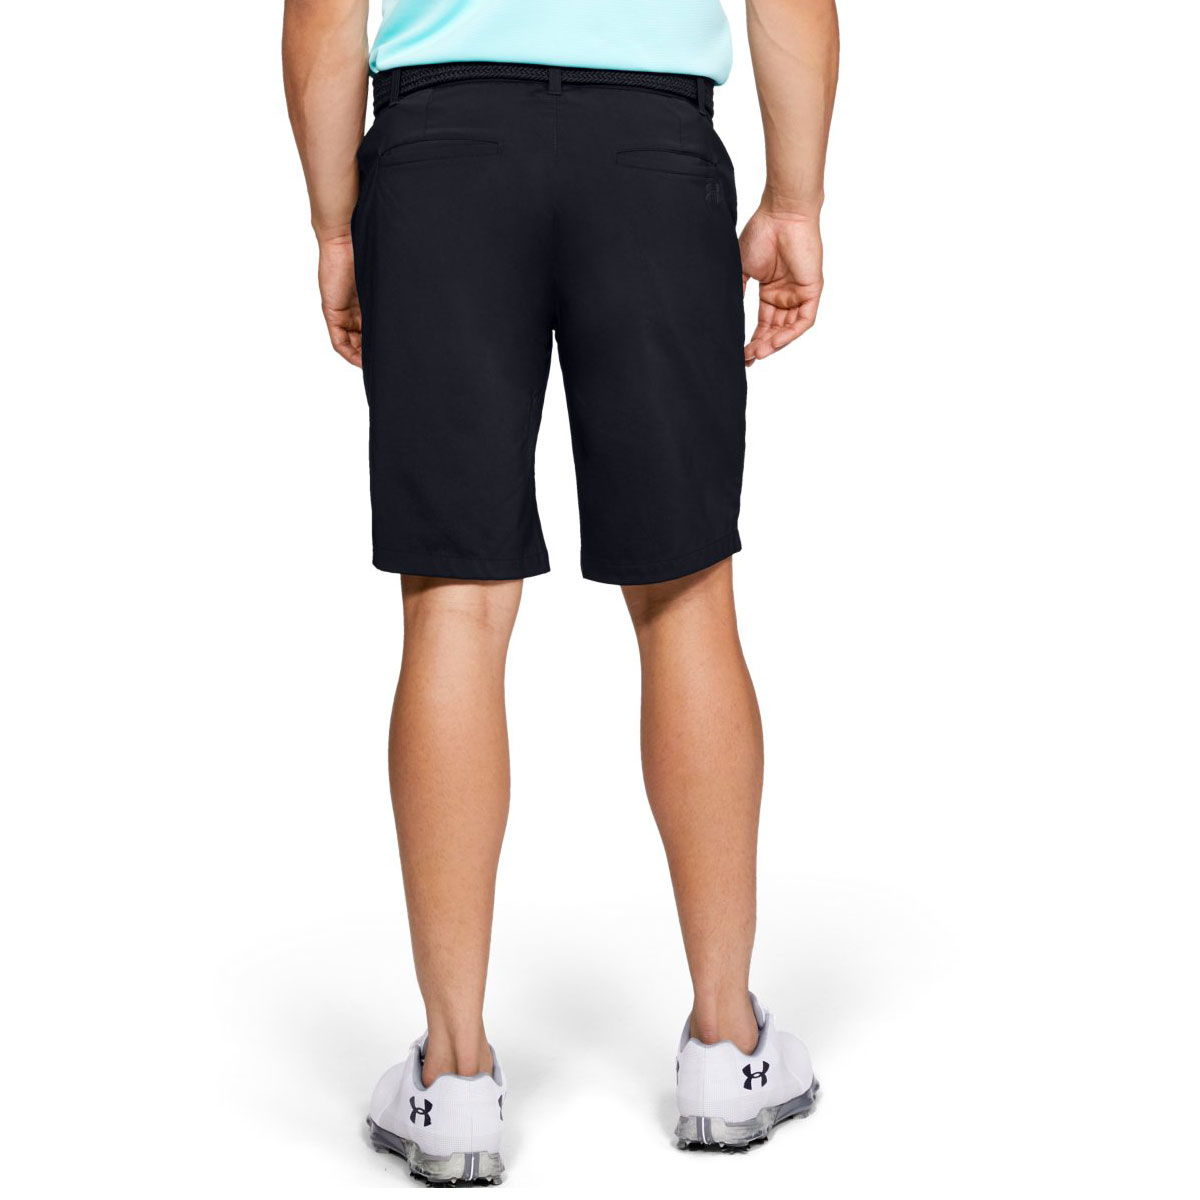 Under-Armour-Mens-EU-Tech-Stretch-Soft-Fitted-Golf-Shorts Indexbild 3